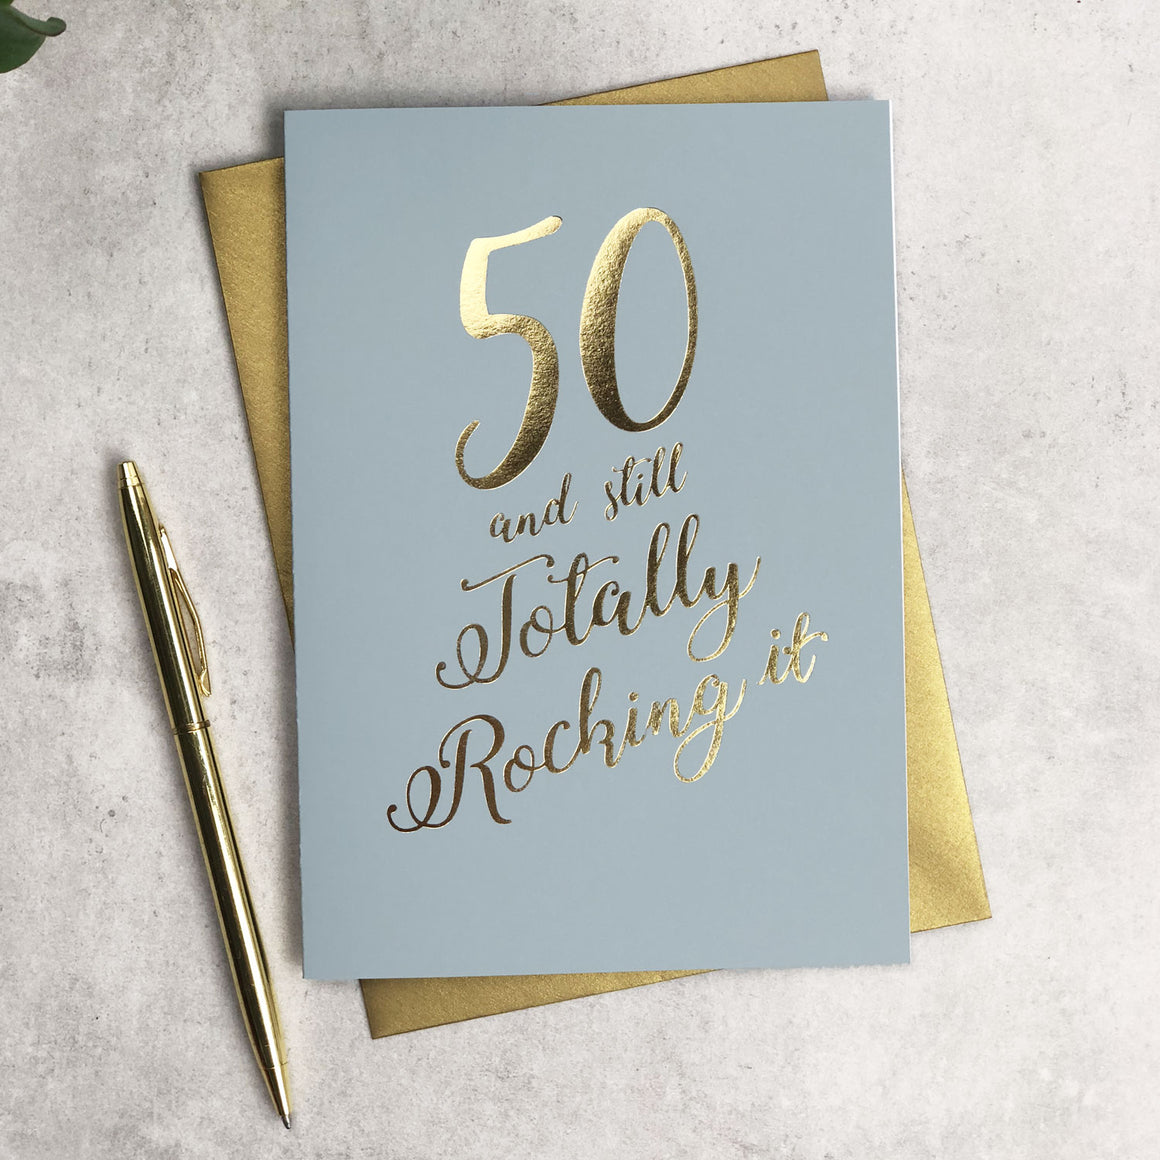 Funny 50 and Still Totalling Rocking It Birthday Card